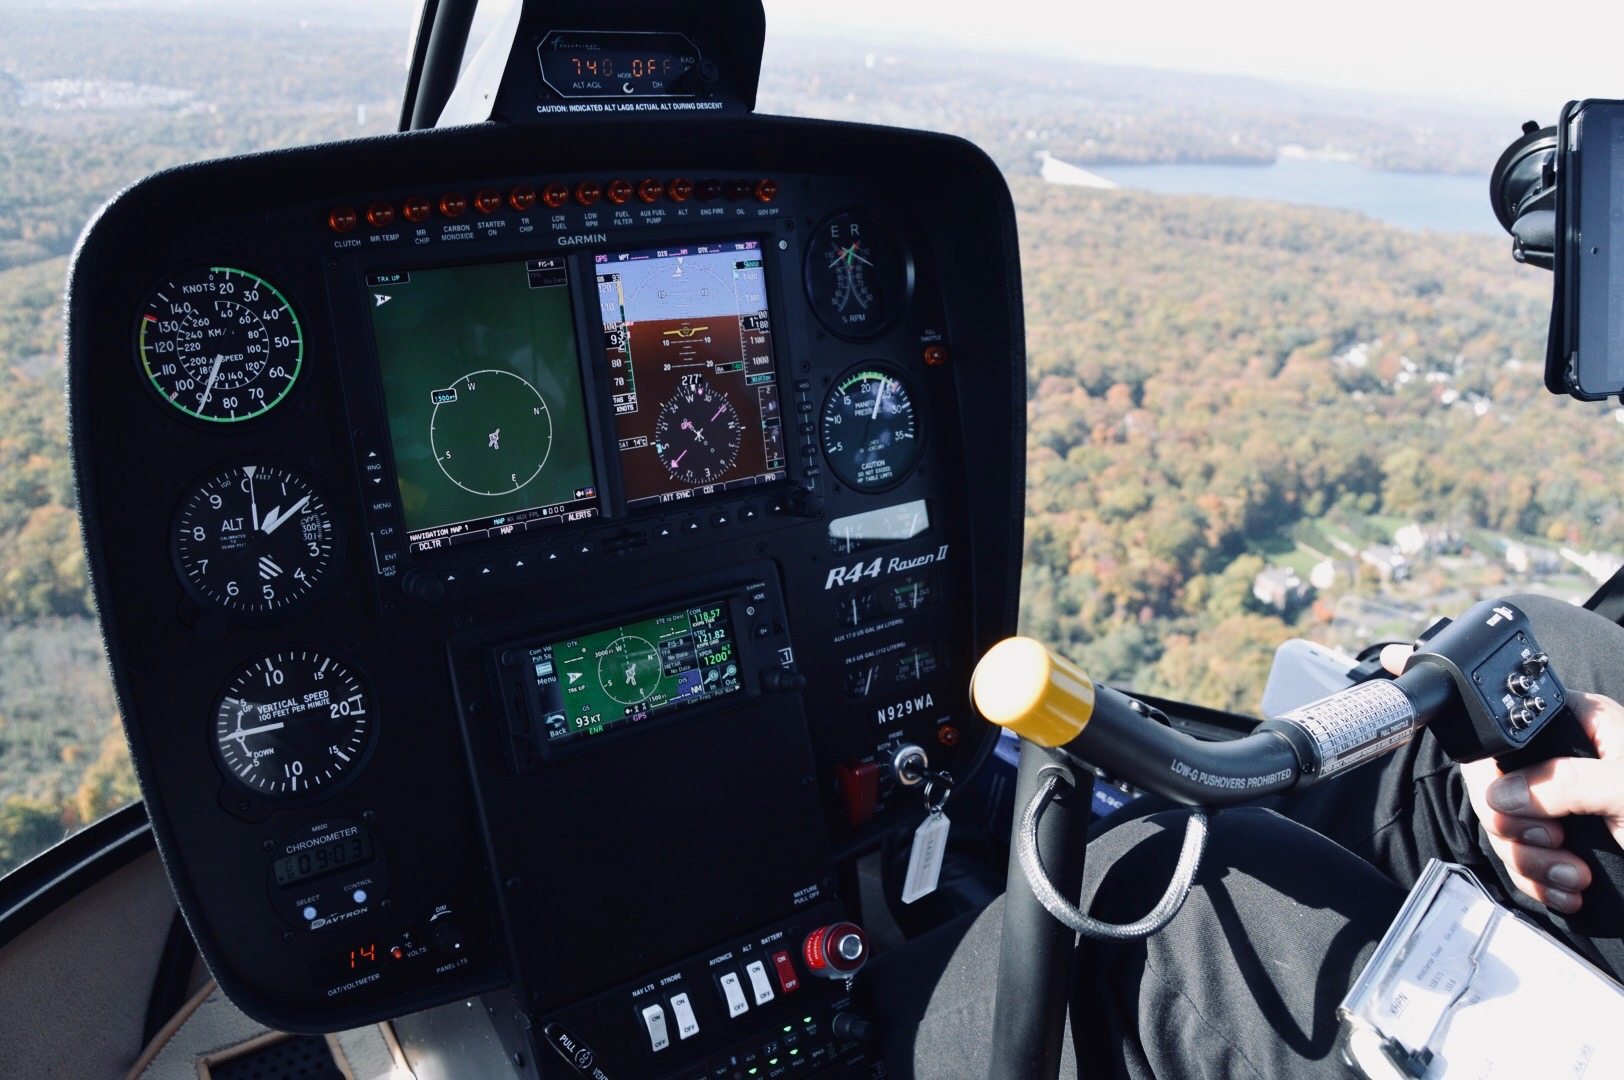 Inside of R44 Raven II Helicopter in flight training